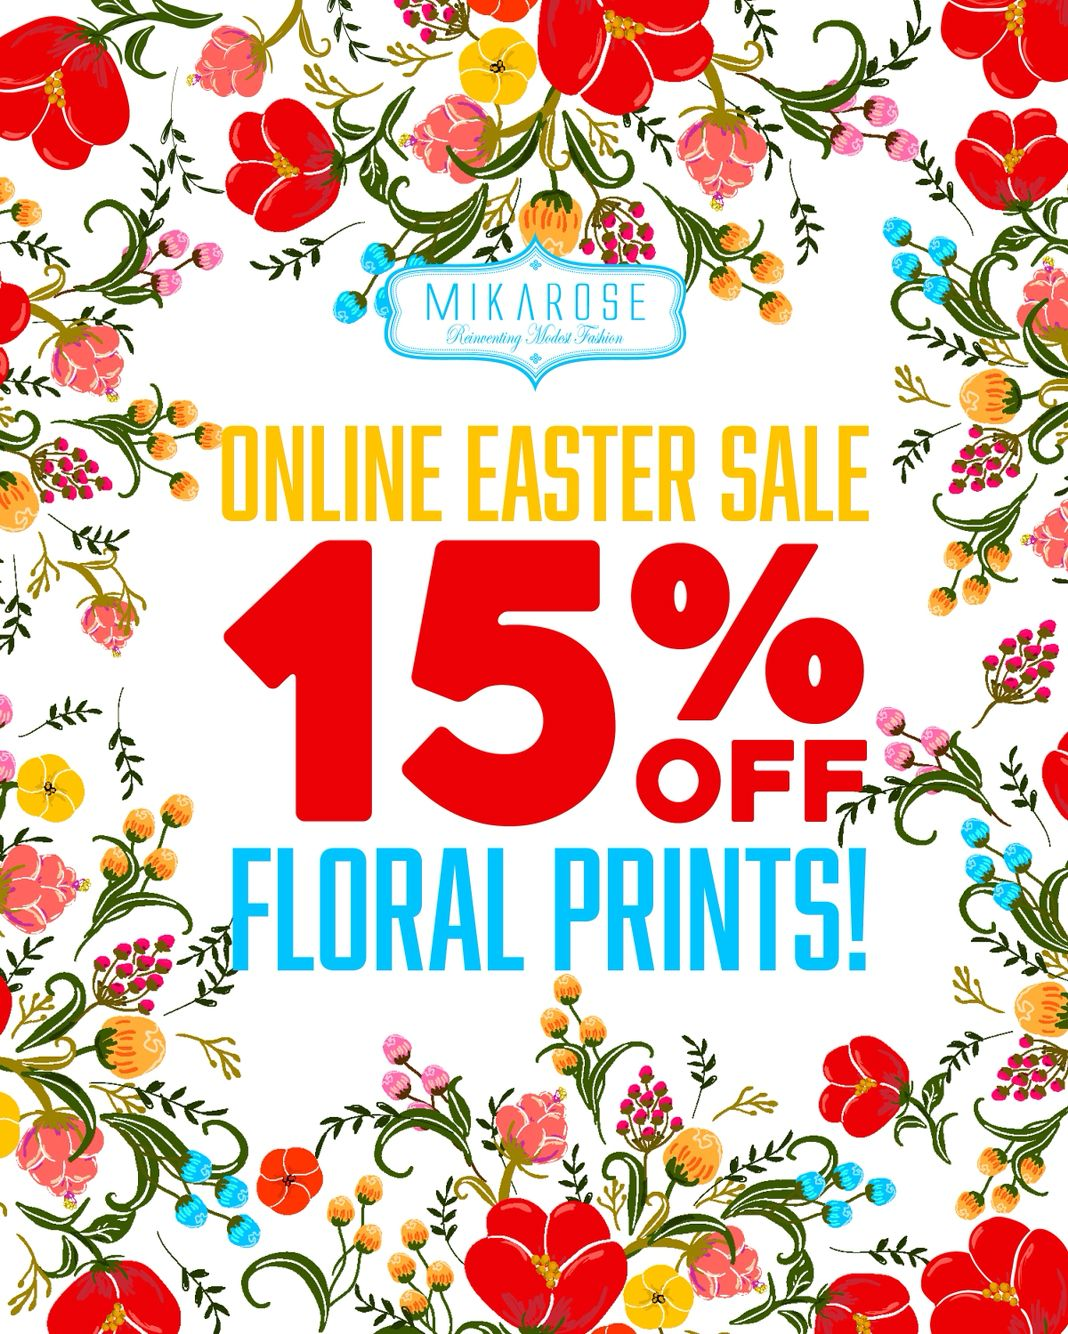 Spring is in the air! Time to order your Easter outfits! Floral prints are 15% off online today and tomorrow. Don't miss out on these cute styles. #florals #easter #spring #fashion #modest #selectstyles